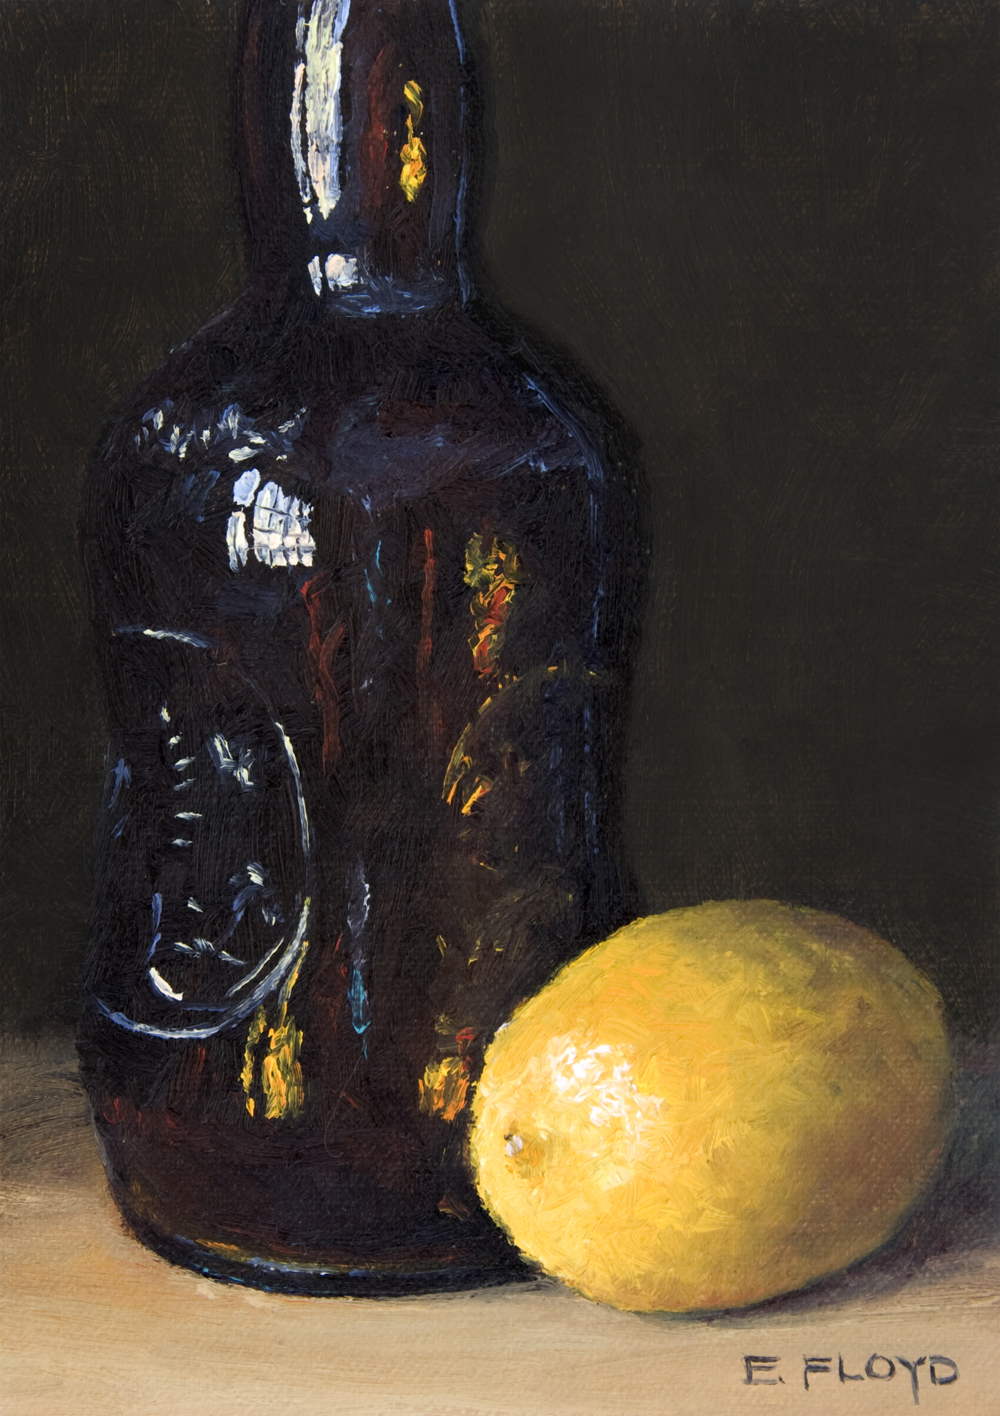 20140107-005-brown-bottle-and-lemon.jpg